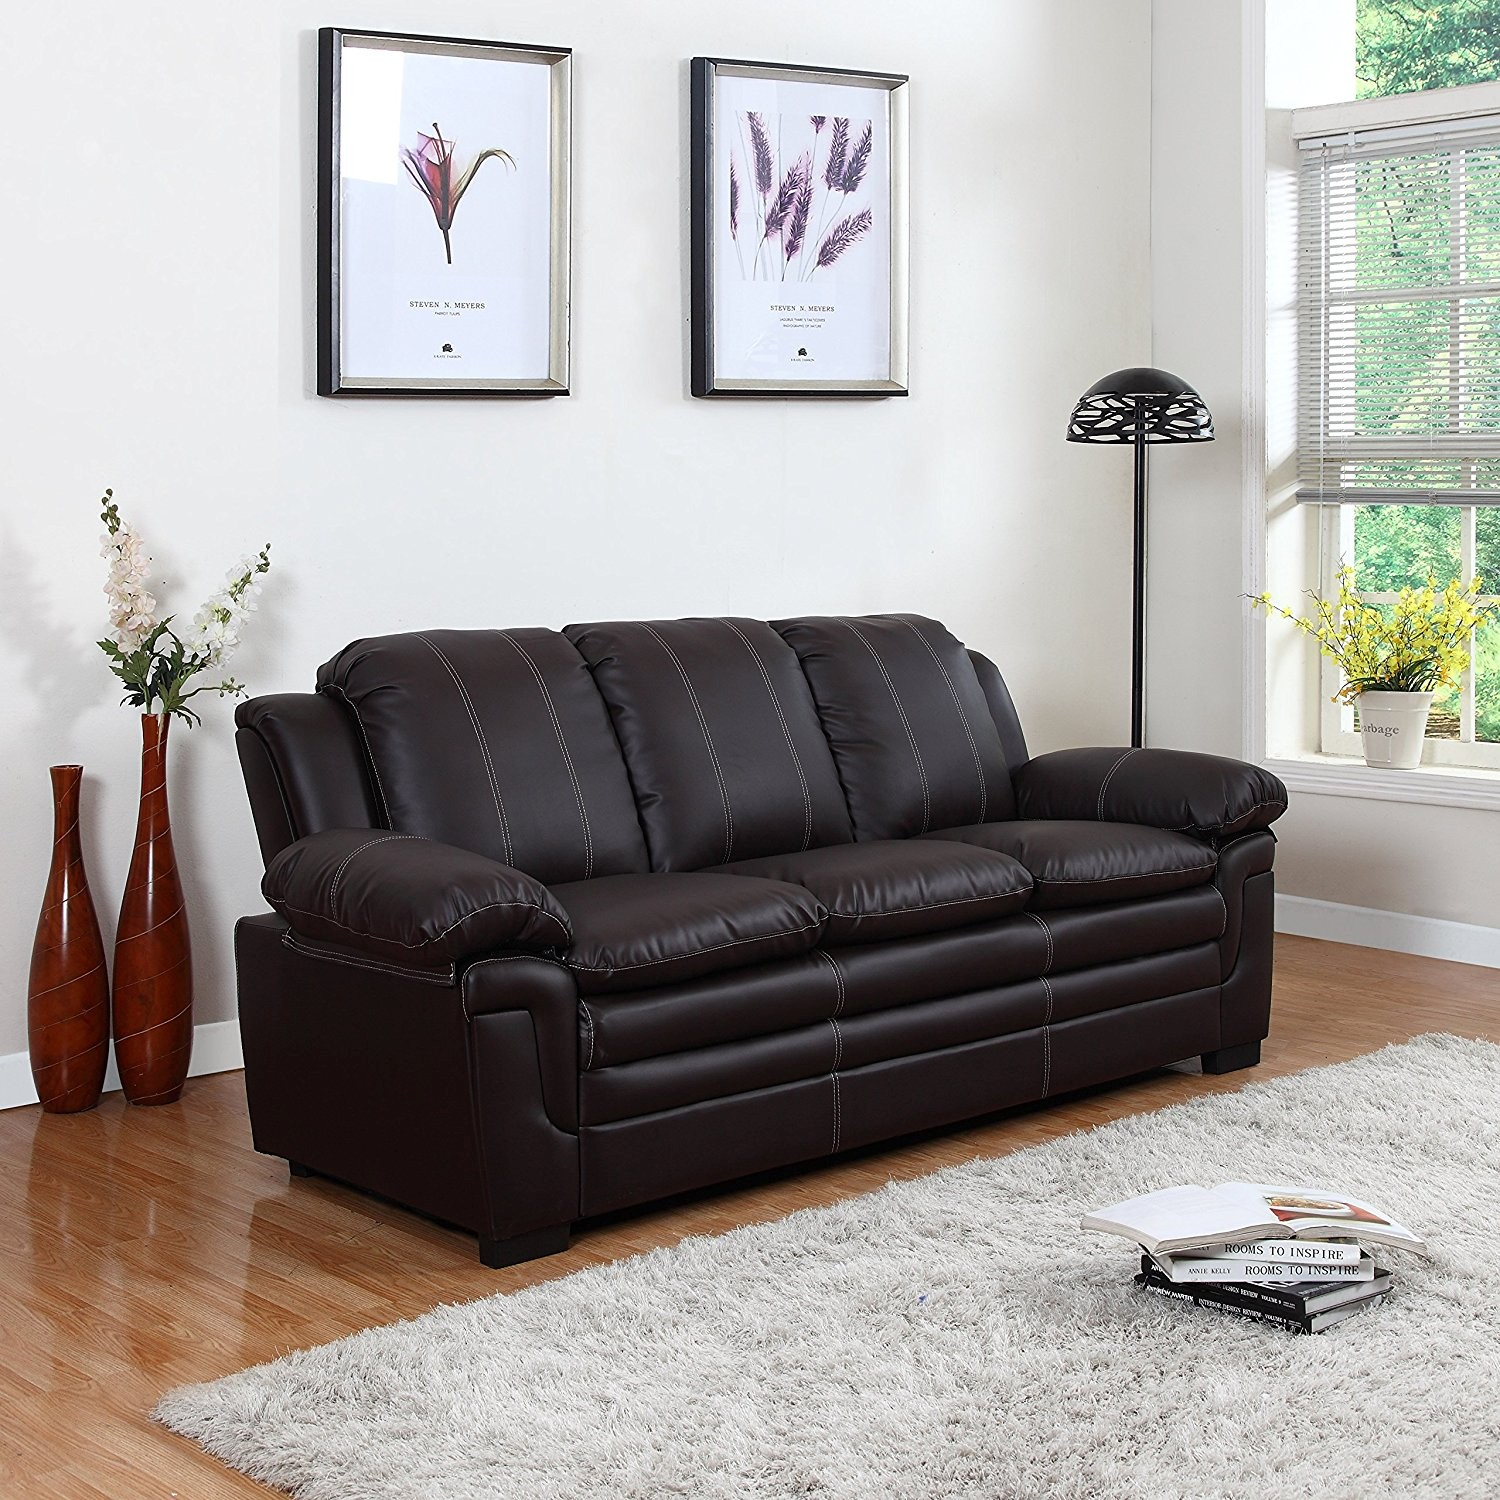 Leather sofa Set Modern Amazon Divano Roma Furniture Classic Bonded Leather sofa Set Inspiration